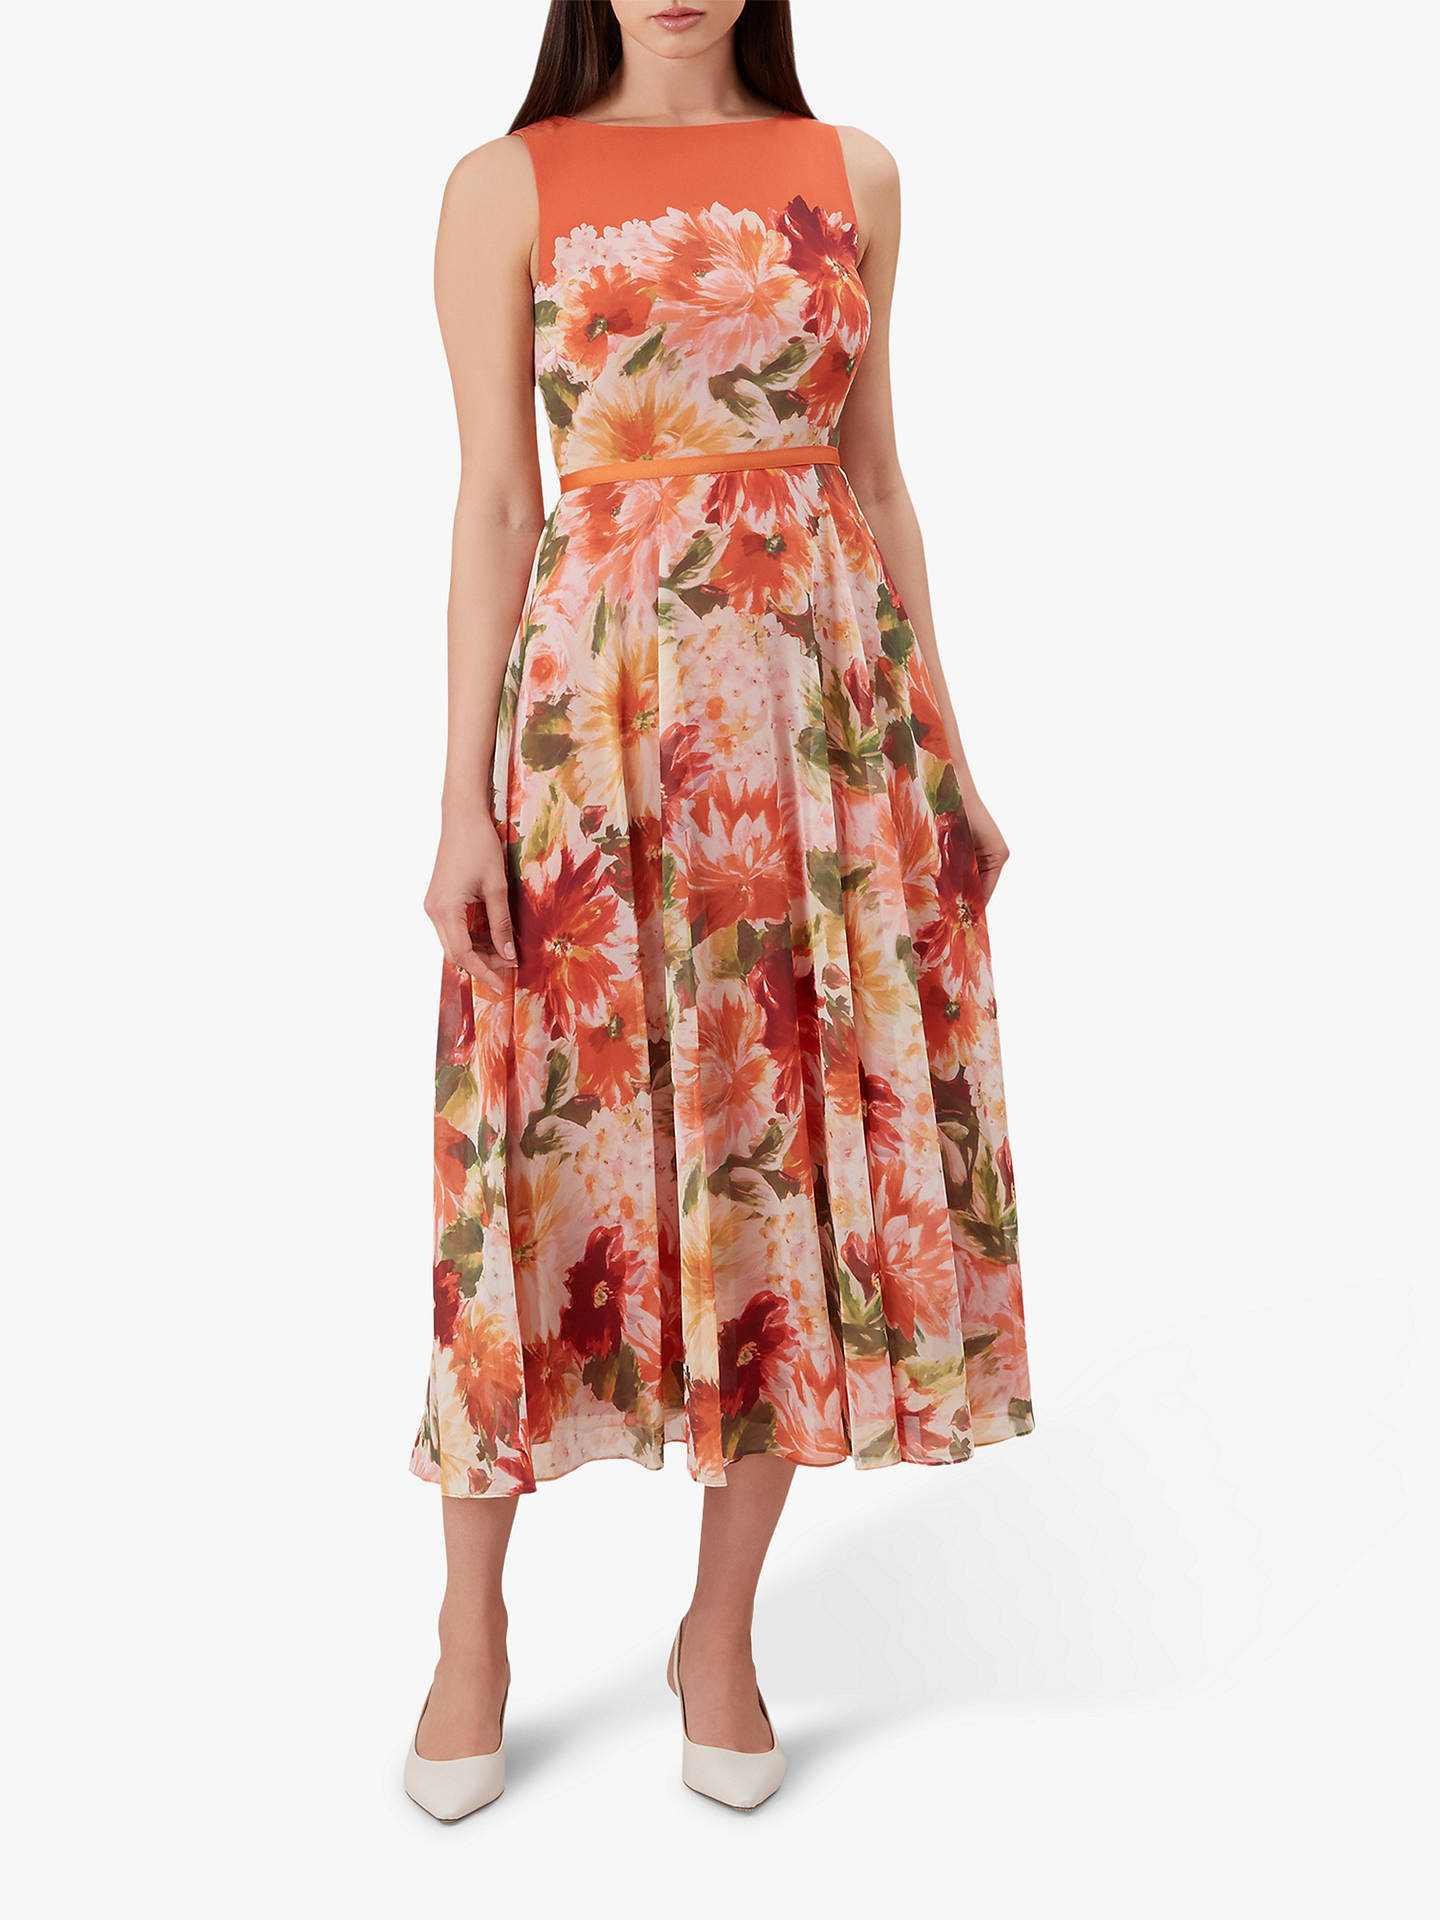 807f395e4945a Hobbs Carly Dahlia Floral Print Midi Dress, Orange at John Lewis ...